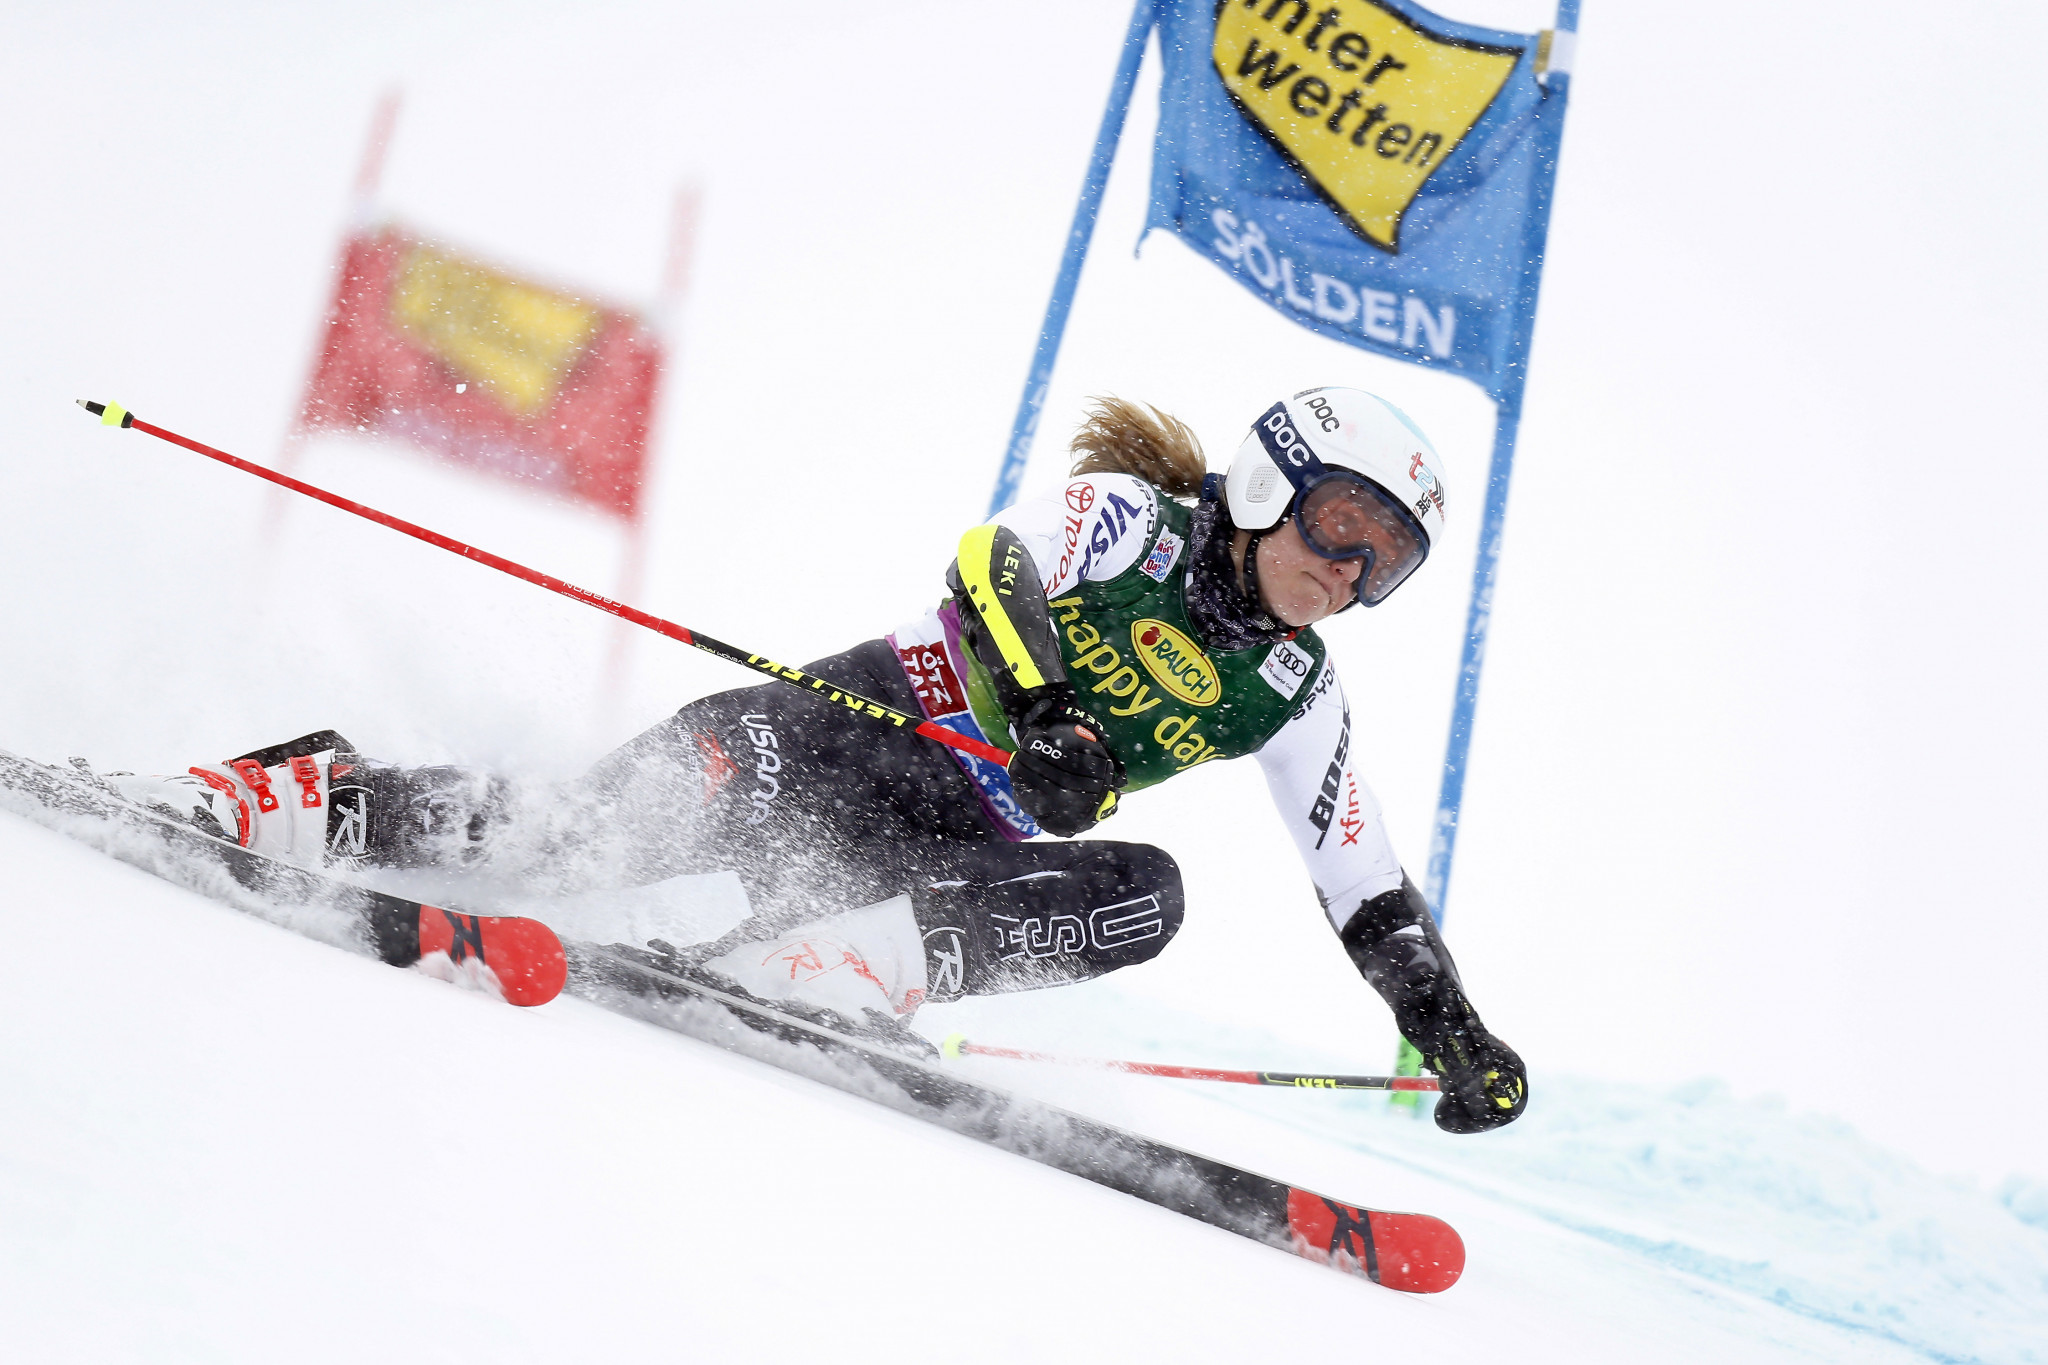 The Alpine Skiing World Cup season begins this weekend in Sölden ©Getty Images